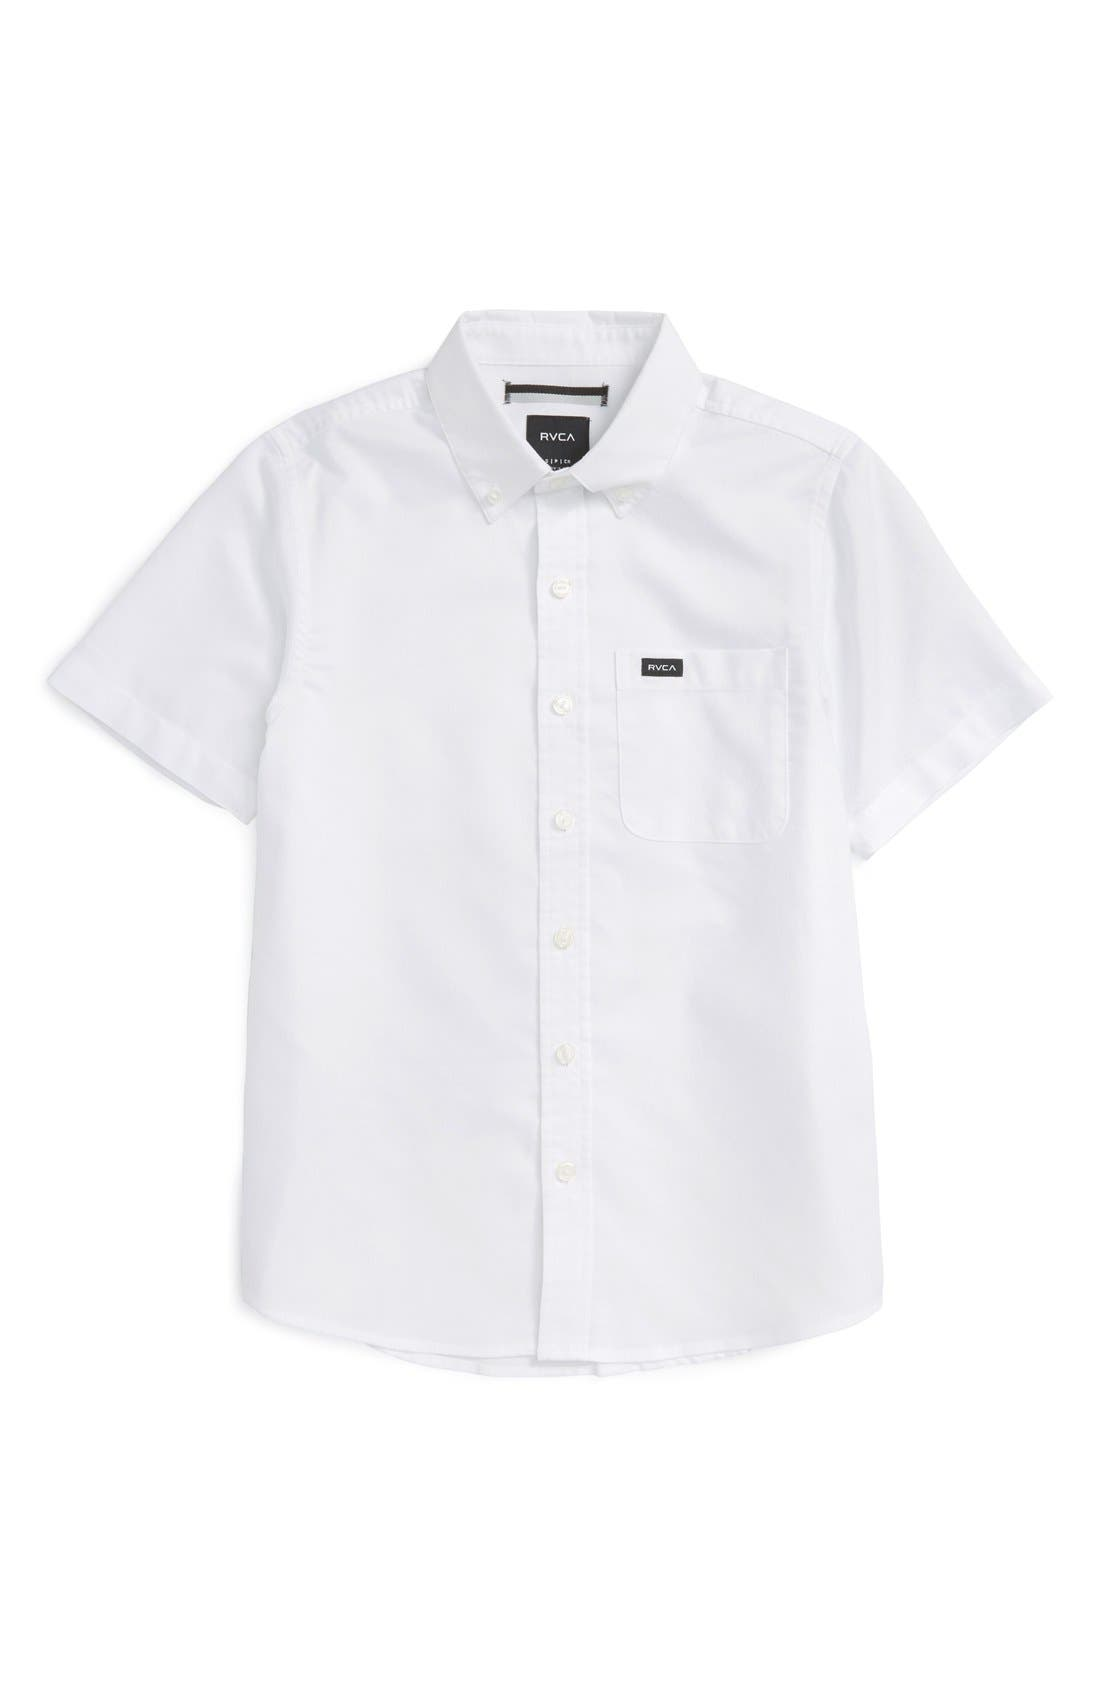 RVCA 'That'll Do' Woven Shirt (Big Boys)